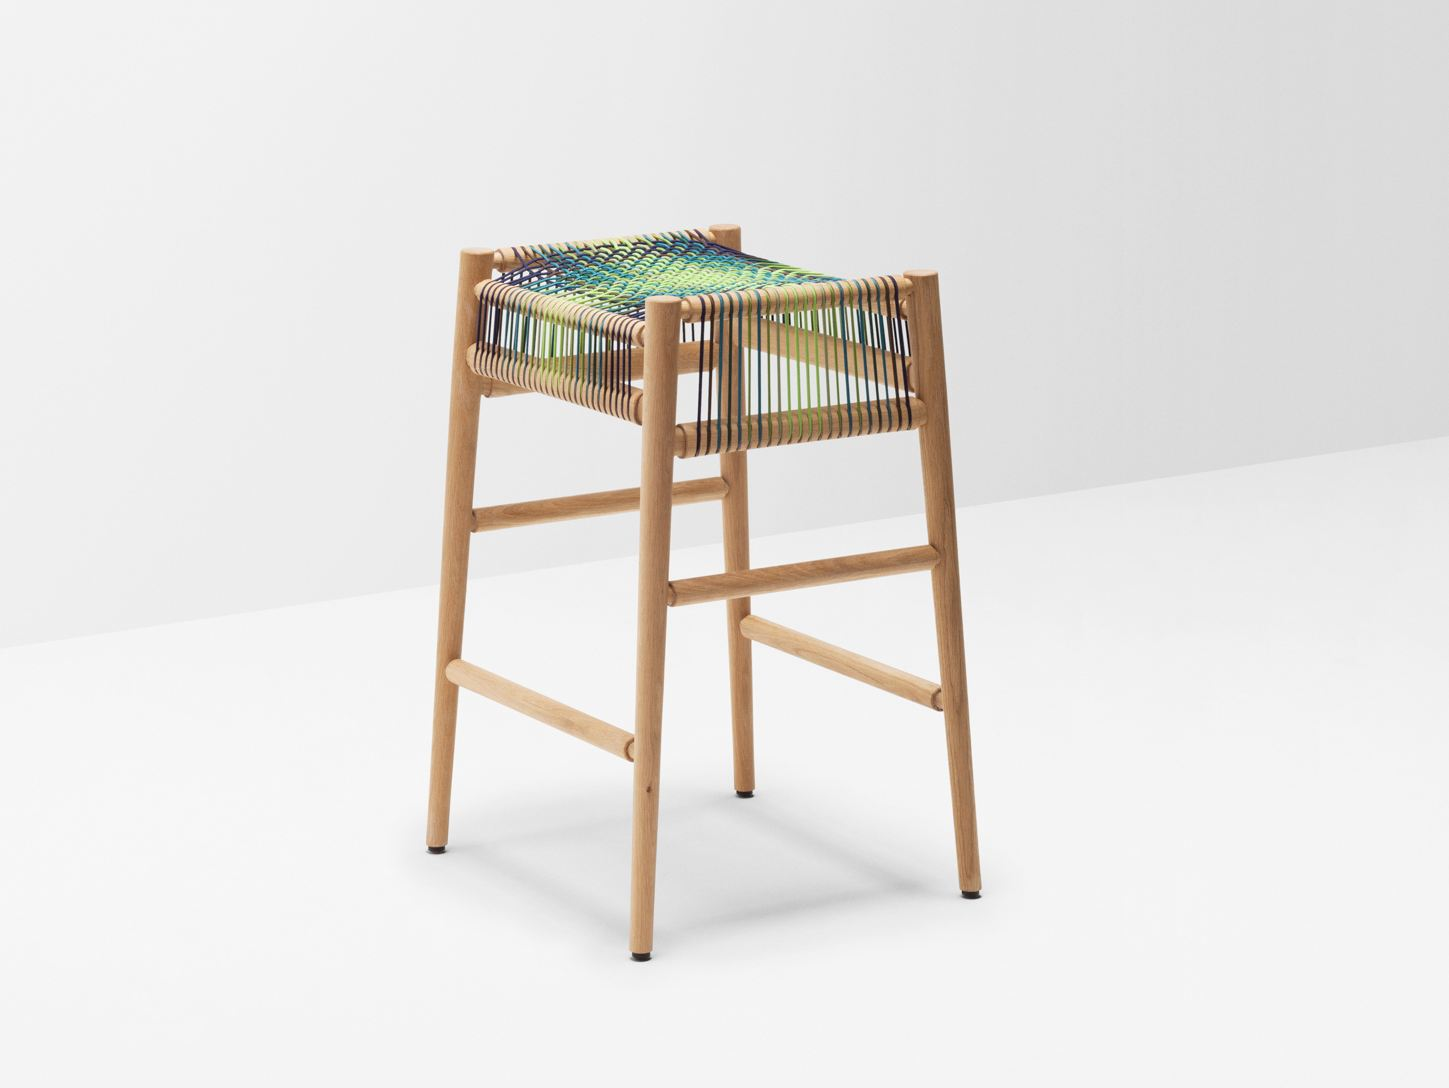 LOOM BY PTOLEMY MANN | High Stool Loom Collection By H Furniture Design  Hierve, Ptolemy Mann